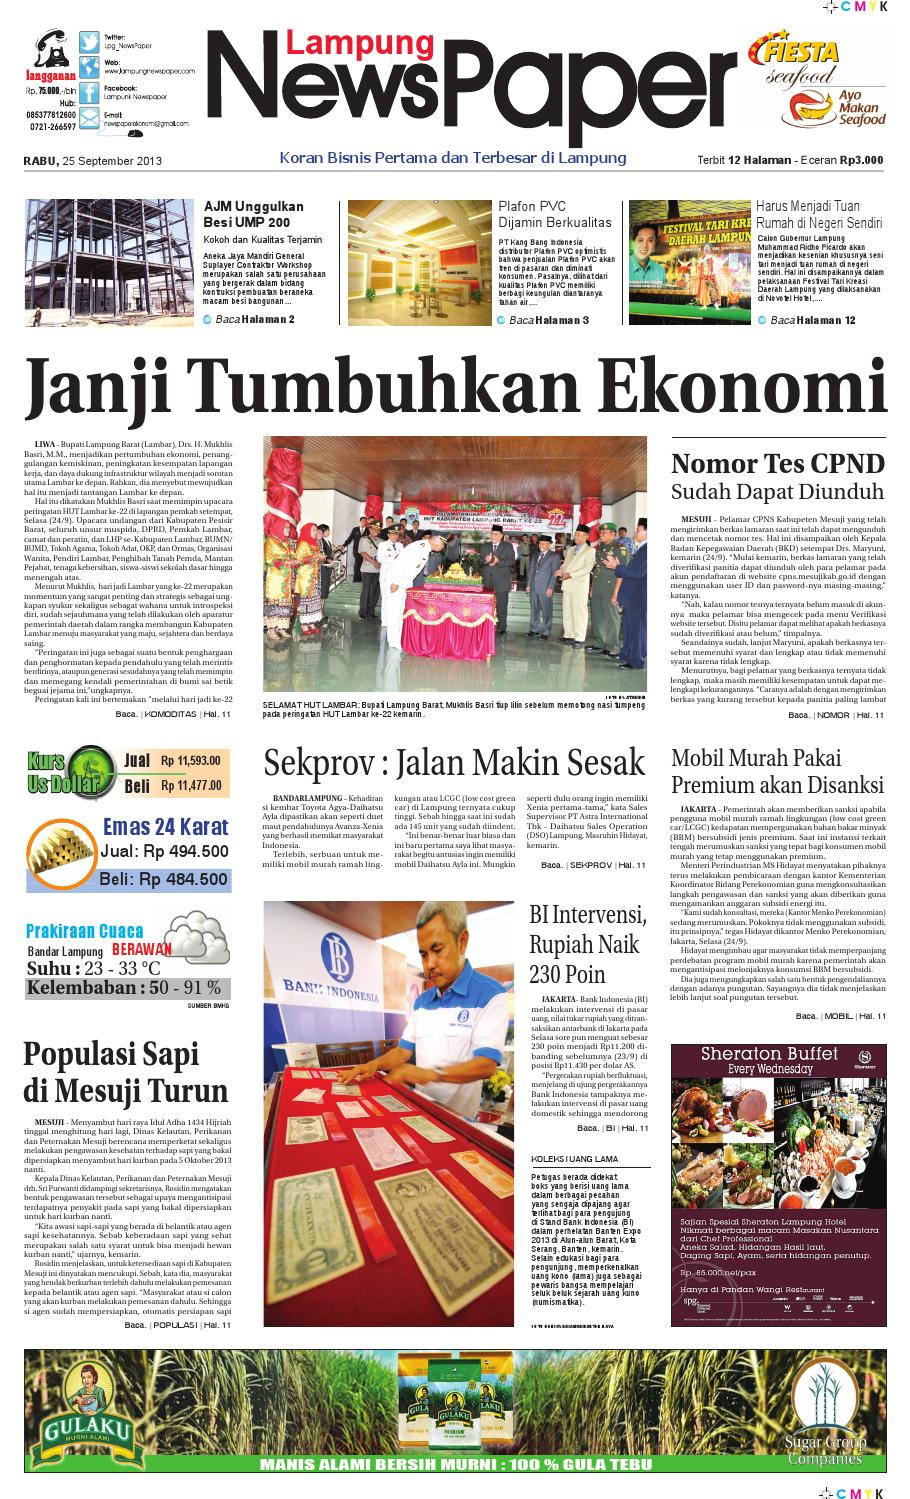 Lampung Newspaper Rabu 25 September 2013 By Lampung News Paper Issuu